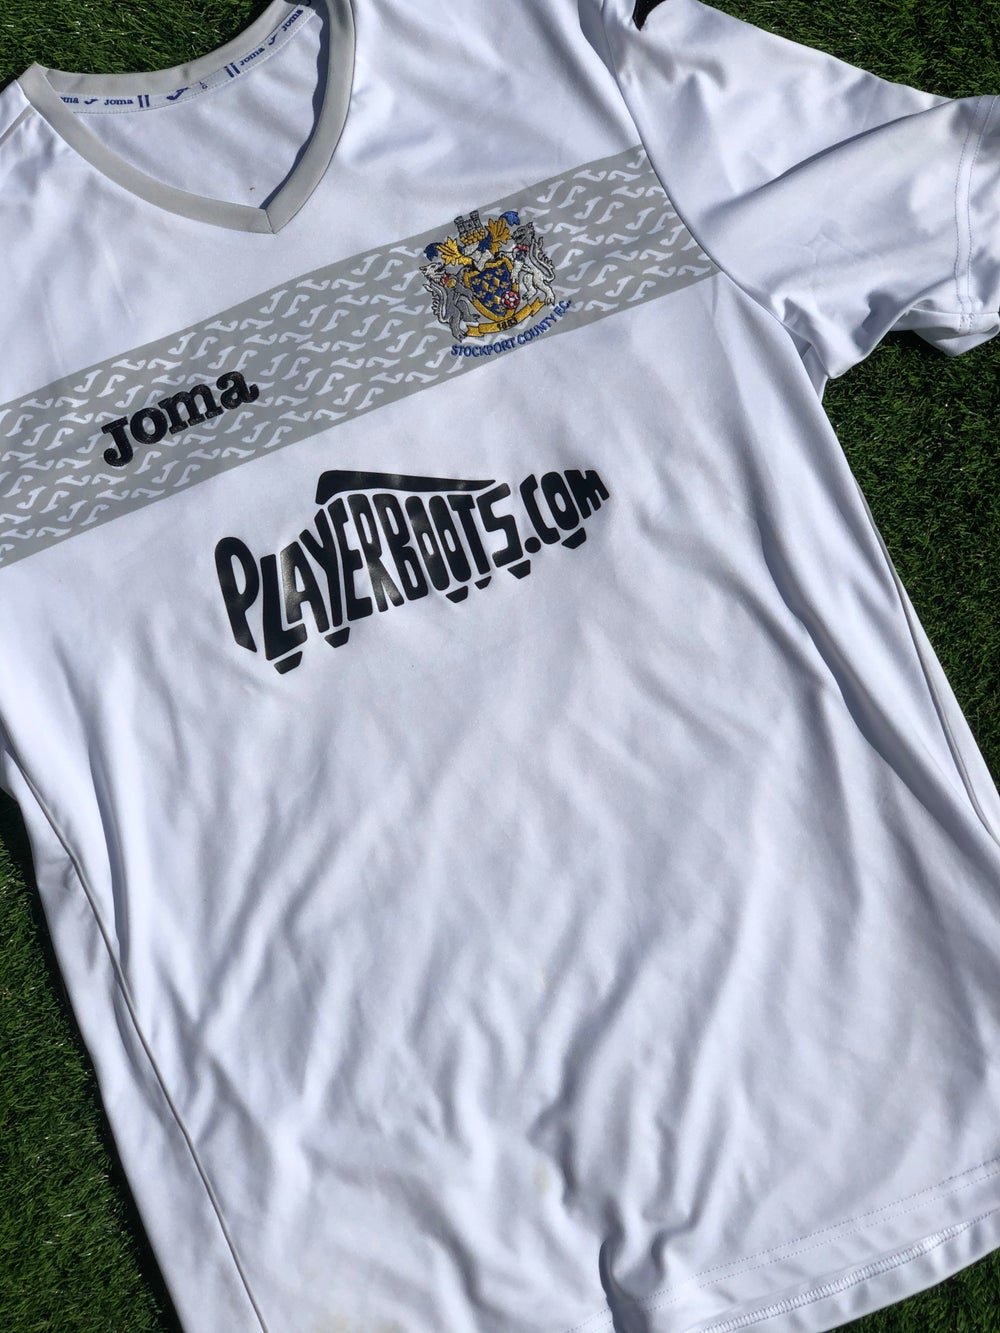 Image of Replica 2014/15 Joma Away Shirt